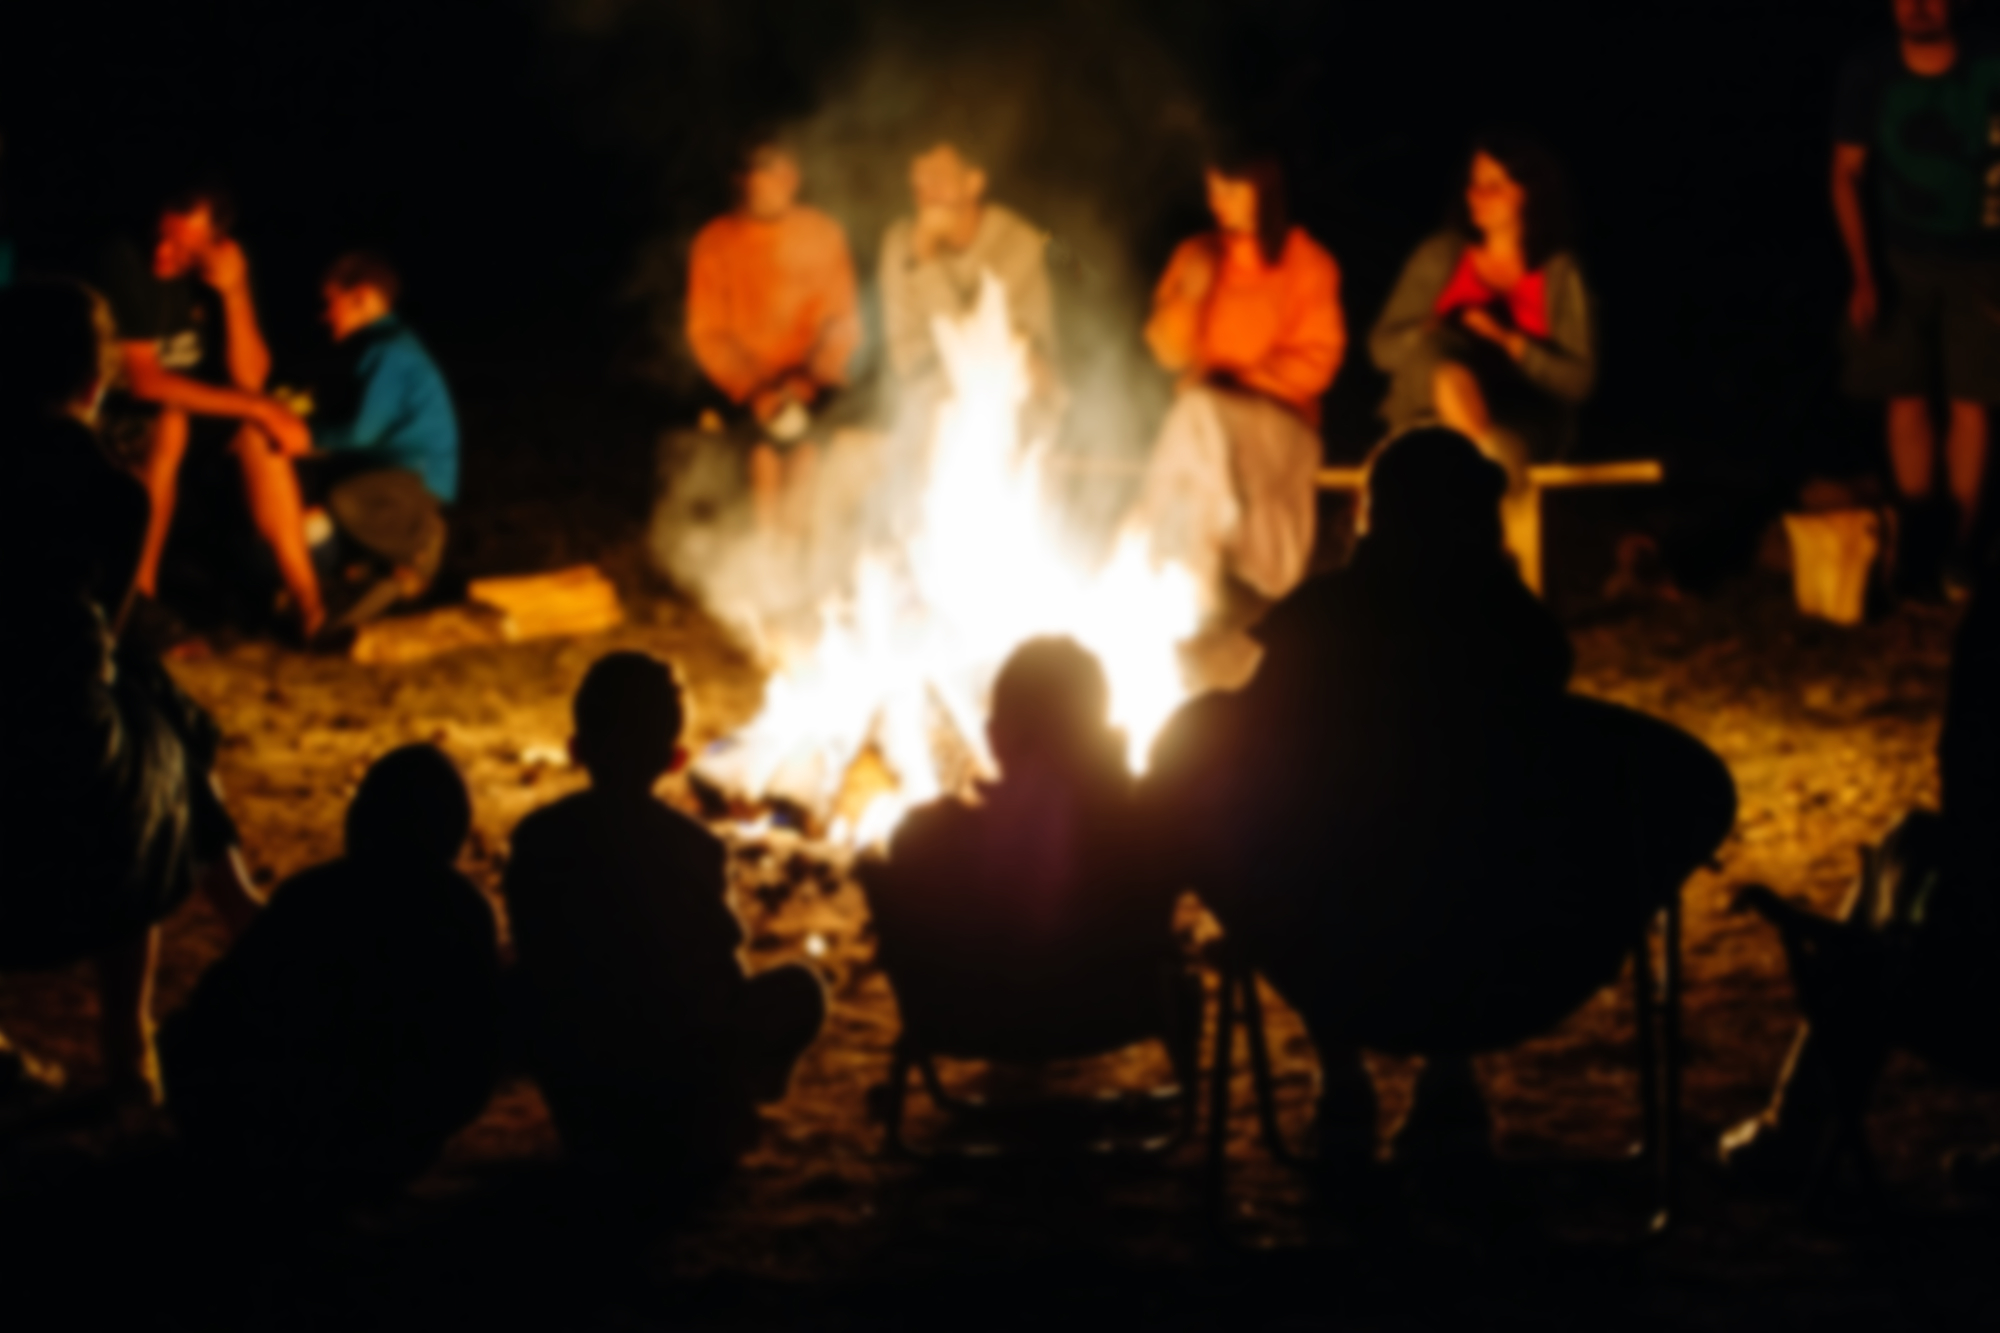 Camp Fire image